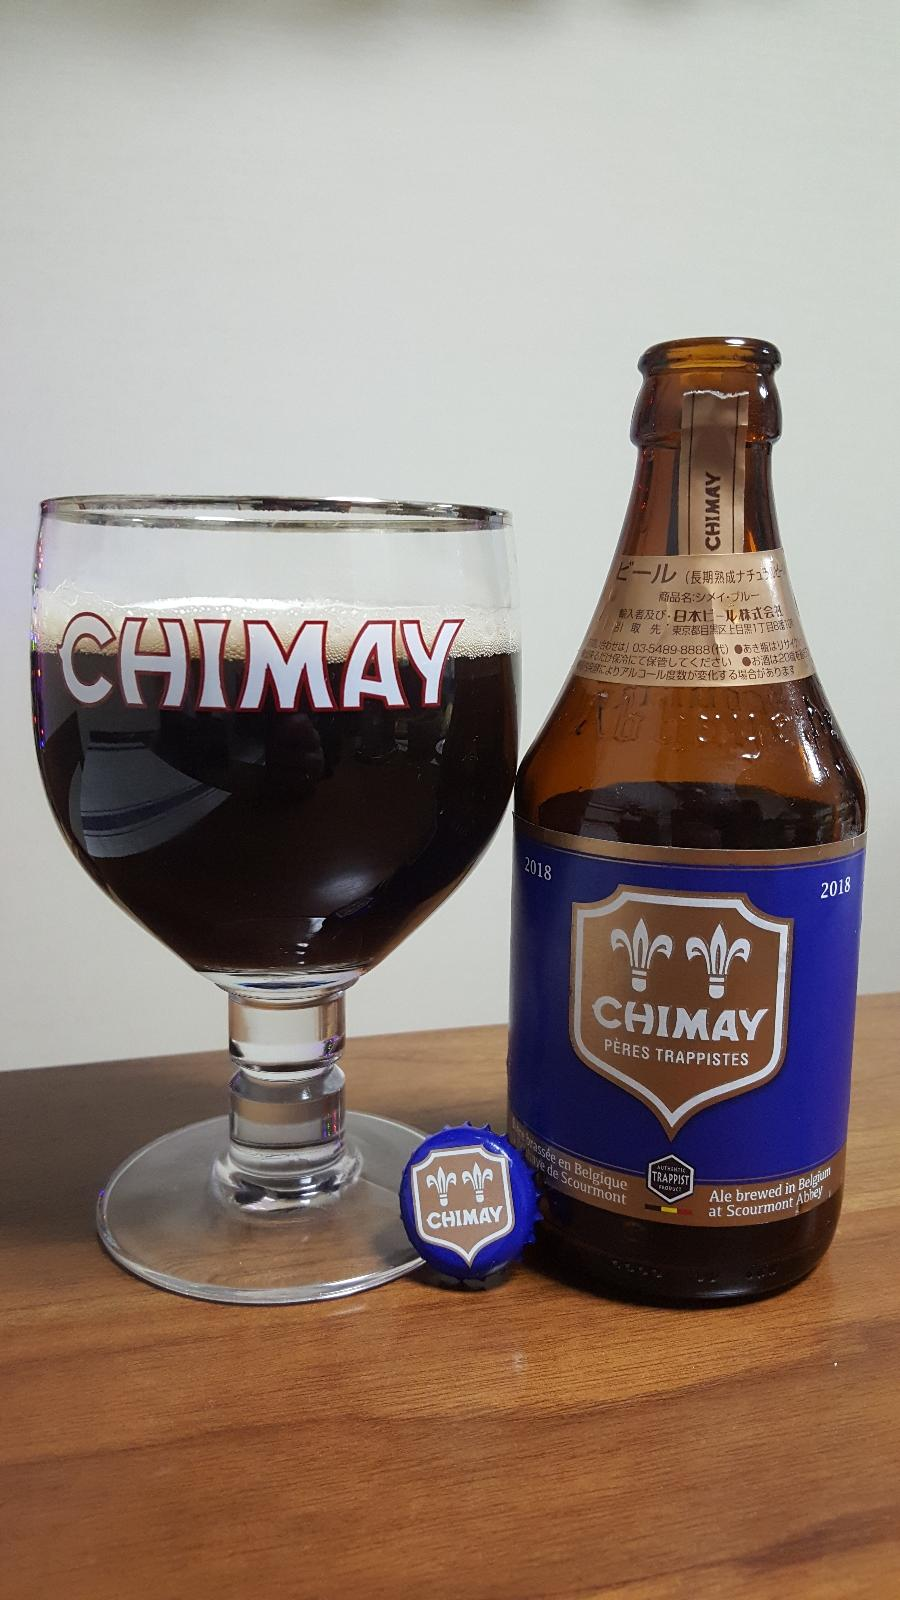 Chimay Pères Trappistes (Blue) 2018